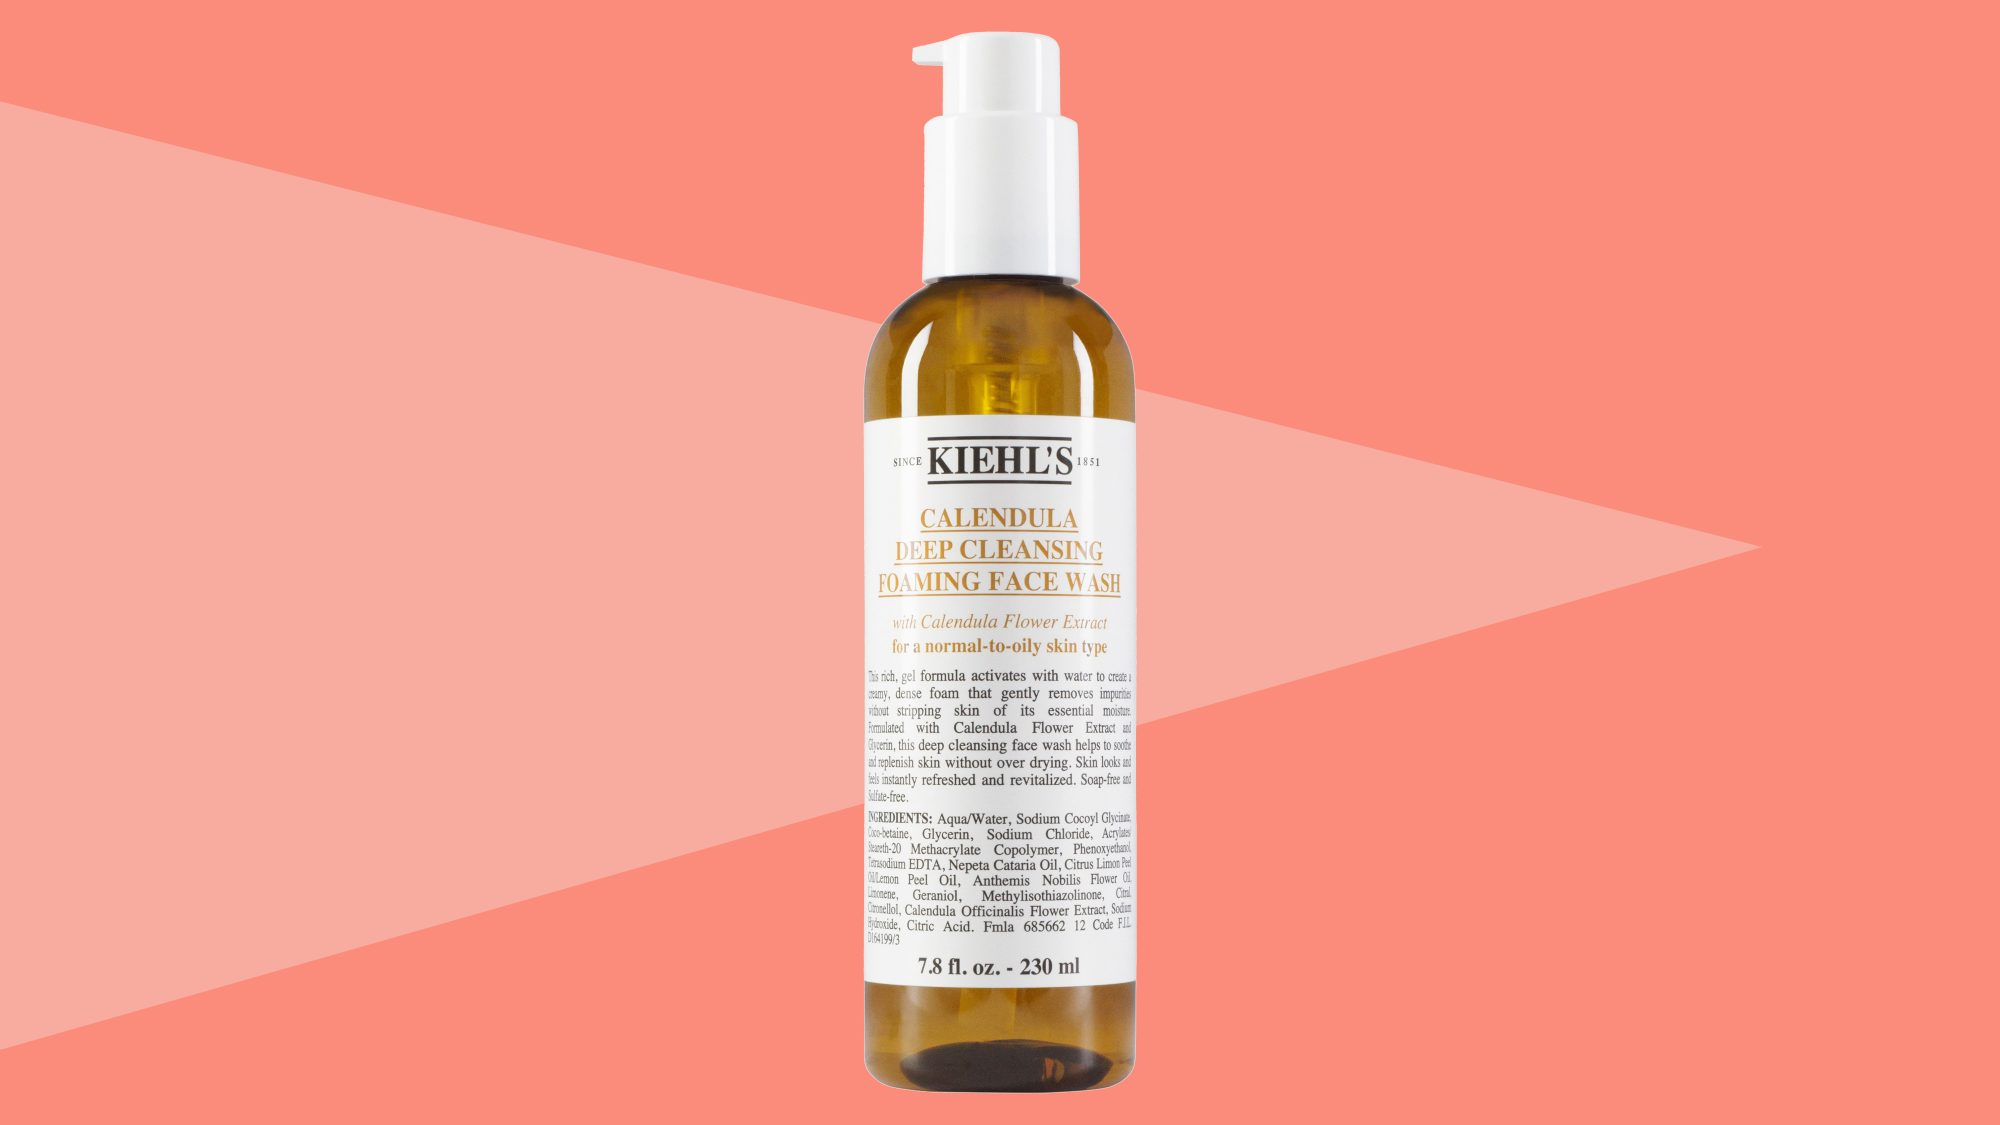 Calendula Deep Cleansing Foaming Face Wash for Normal-to-Oily Skin Tout